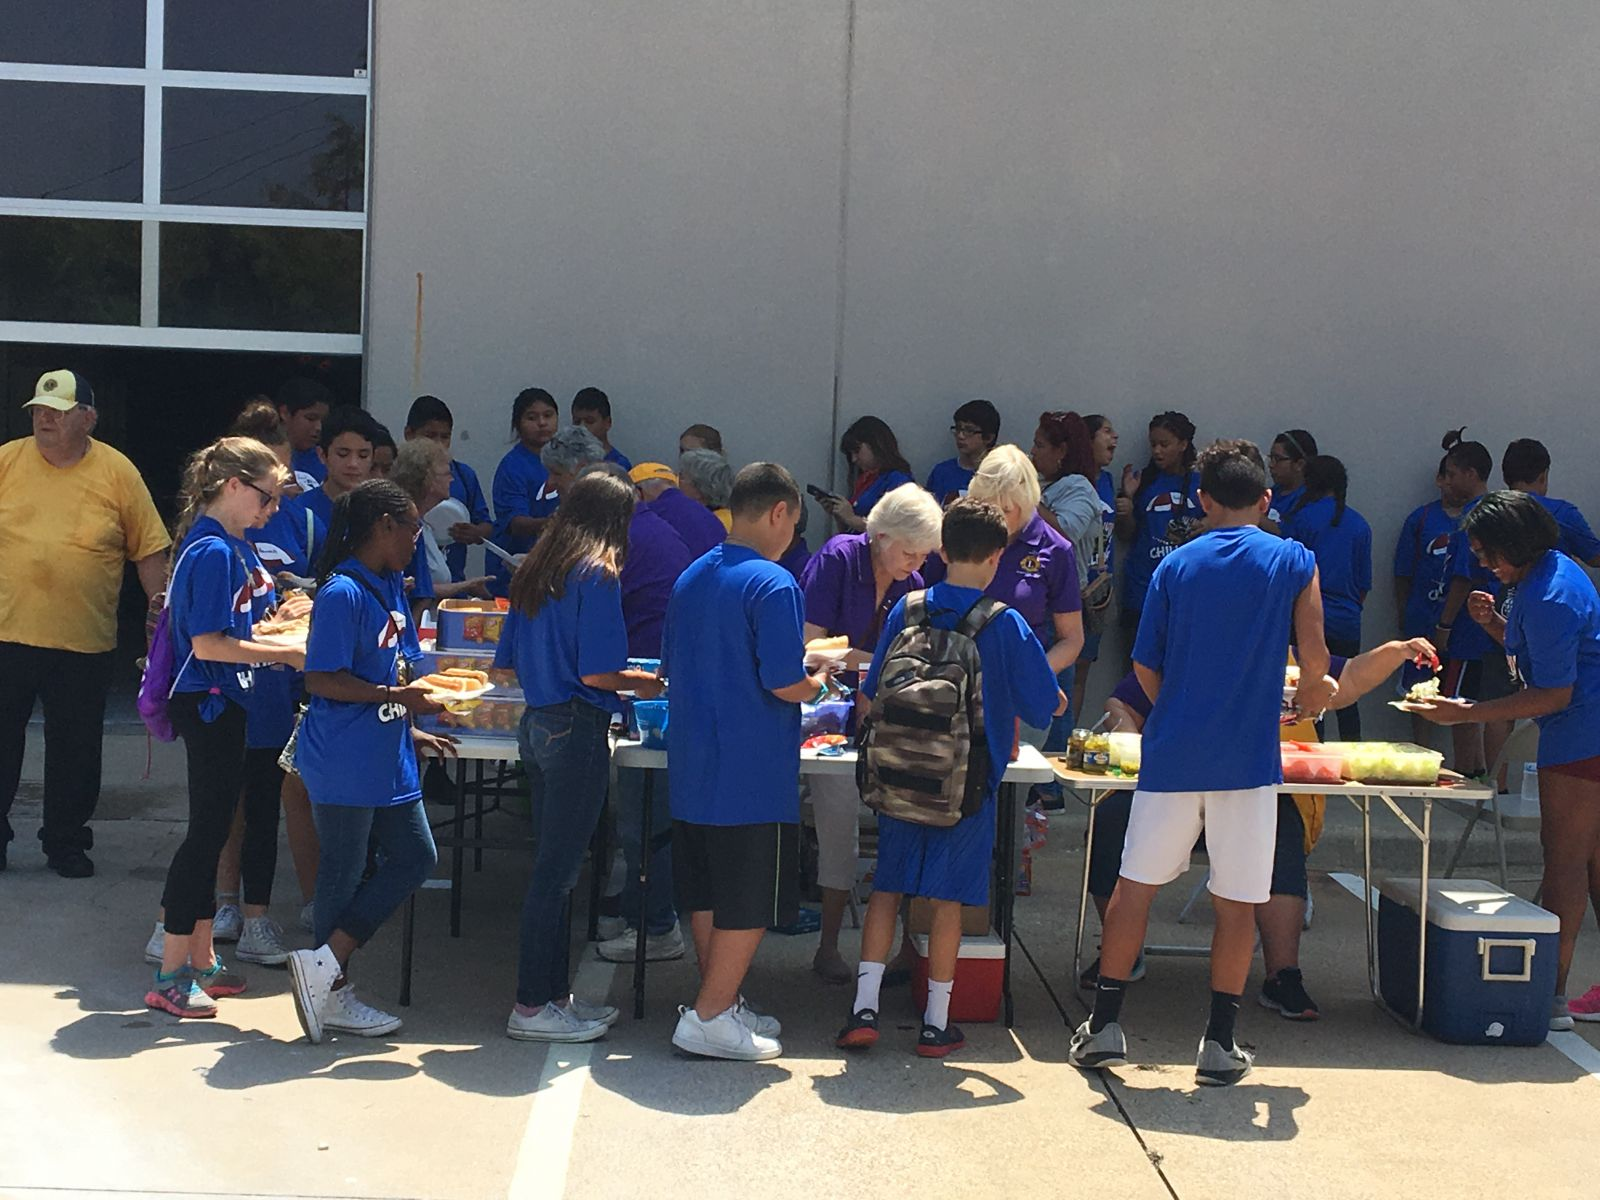 Lions serve lunch to kids during Grapevine PD Summer Camp